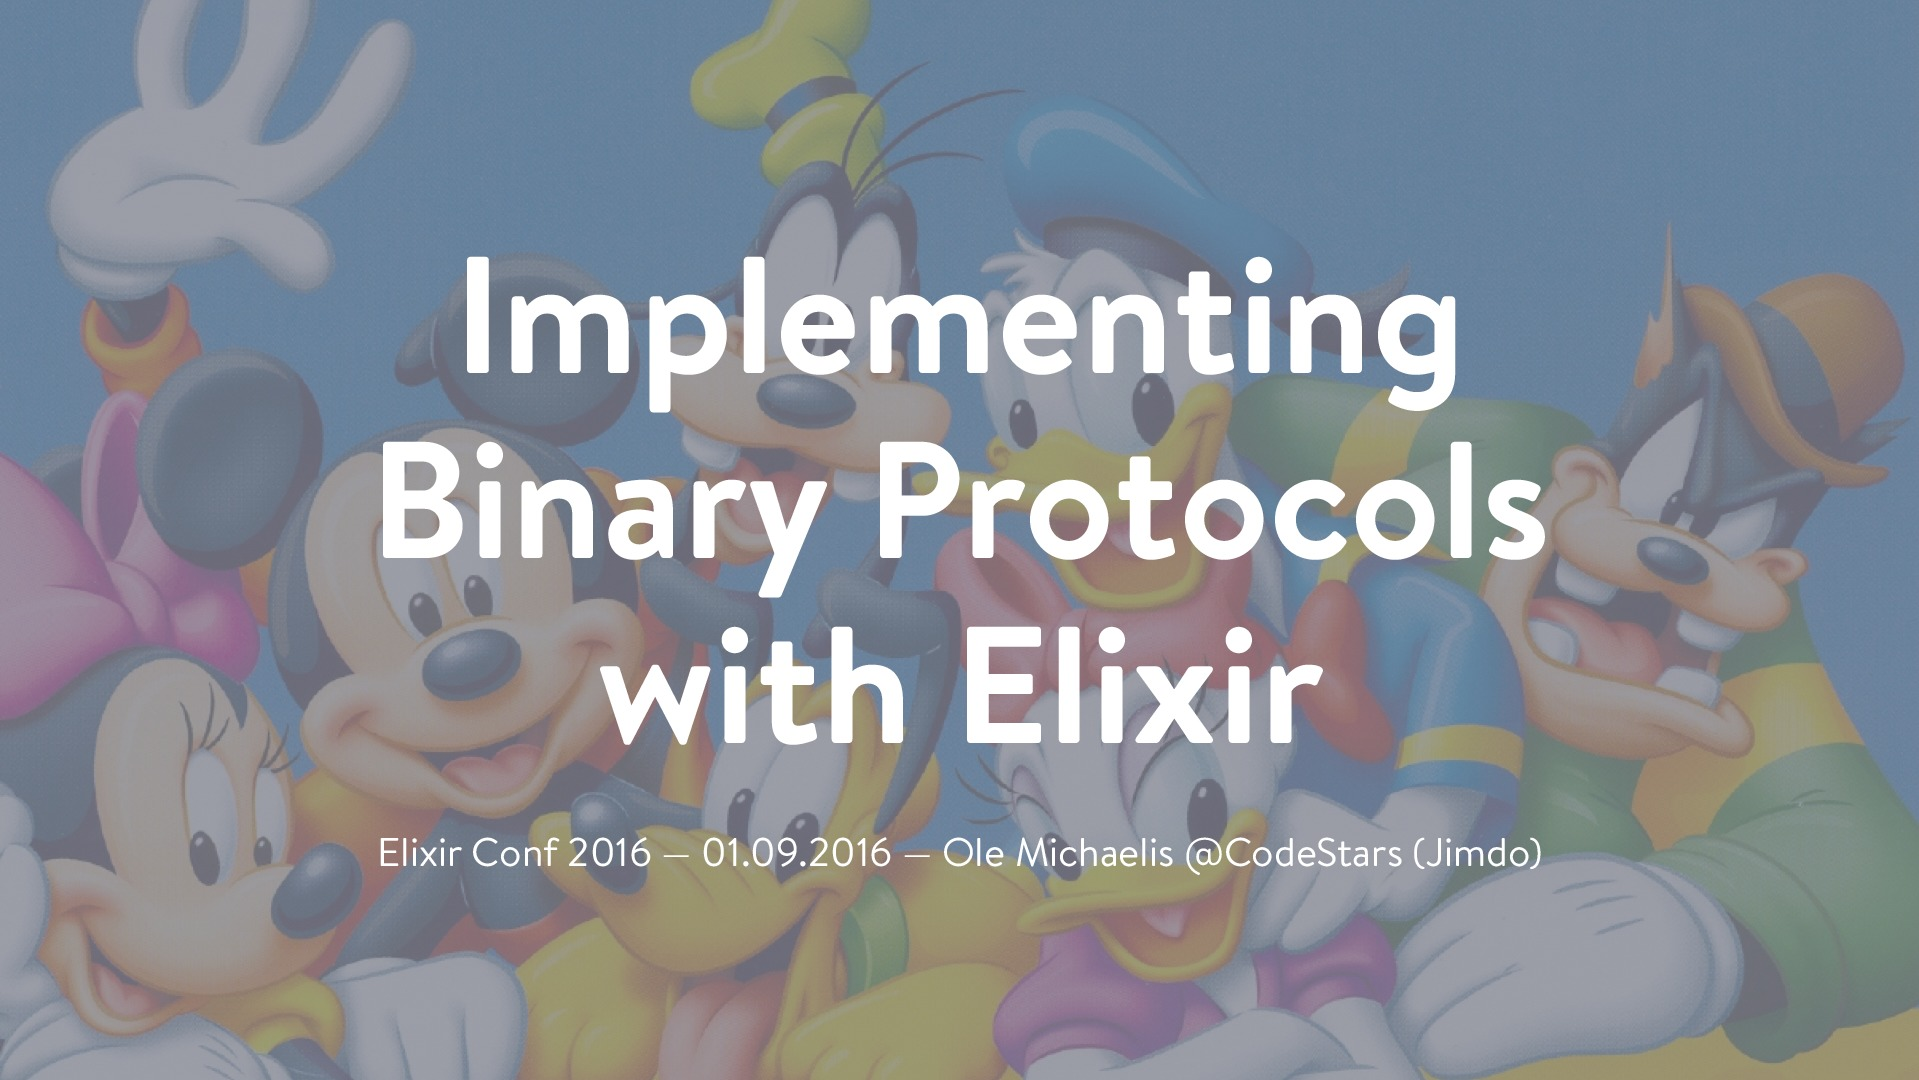 Implementing binary protocols with Elixir